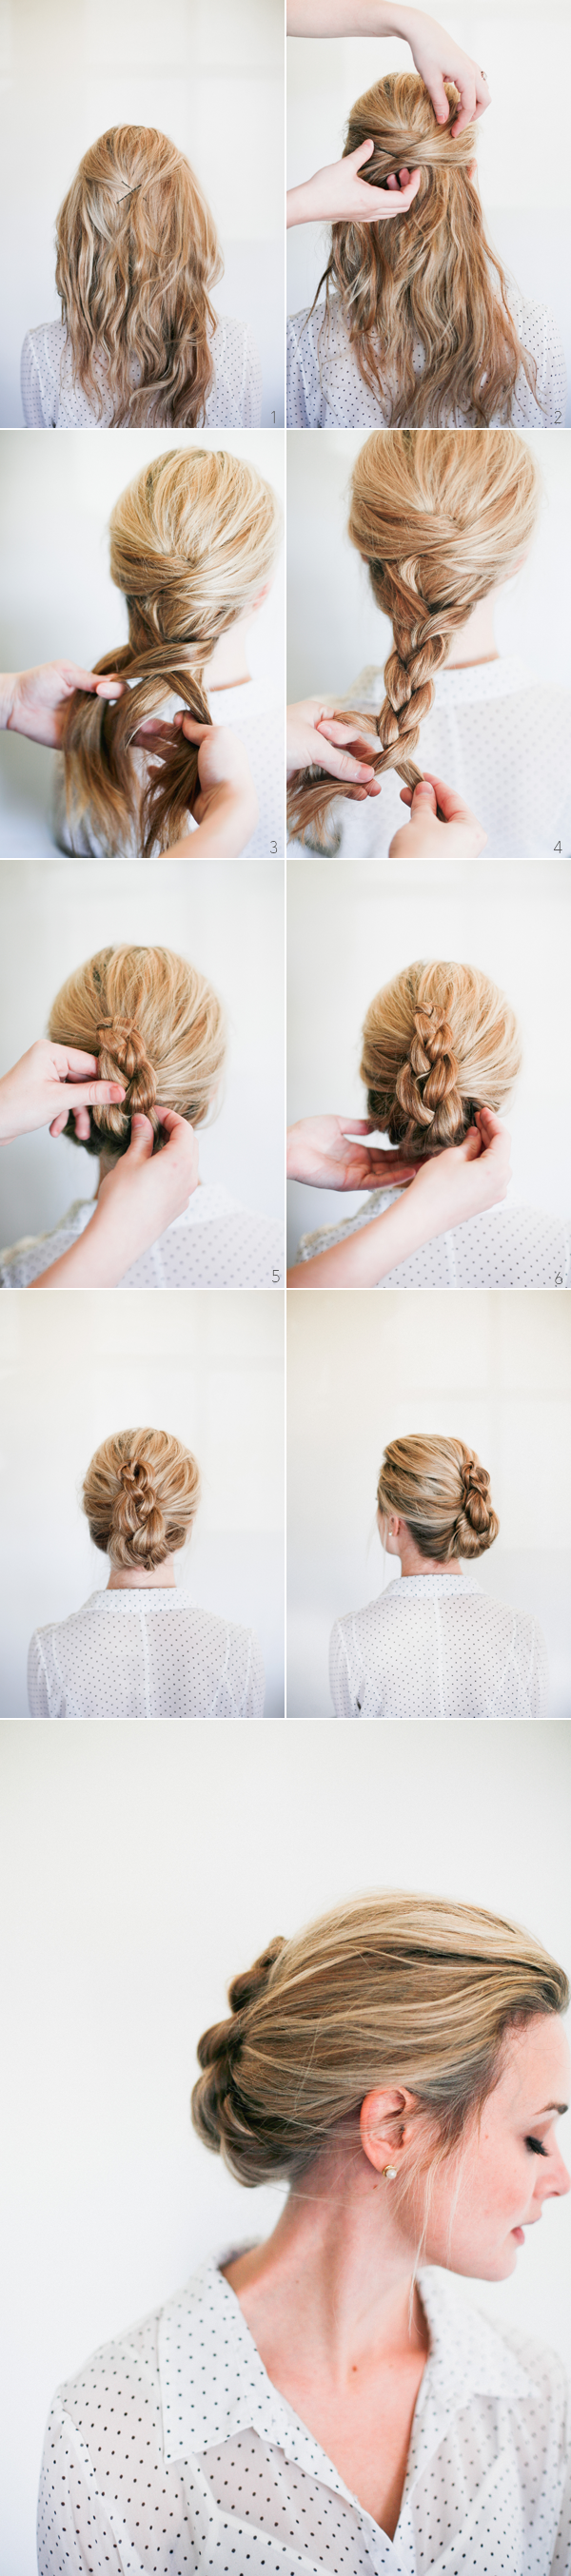 simple and easy hairstyles for your daily look hair is awesome